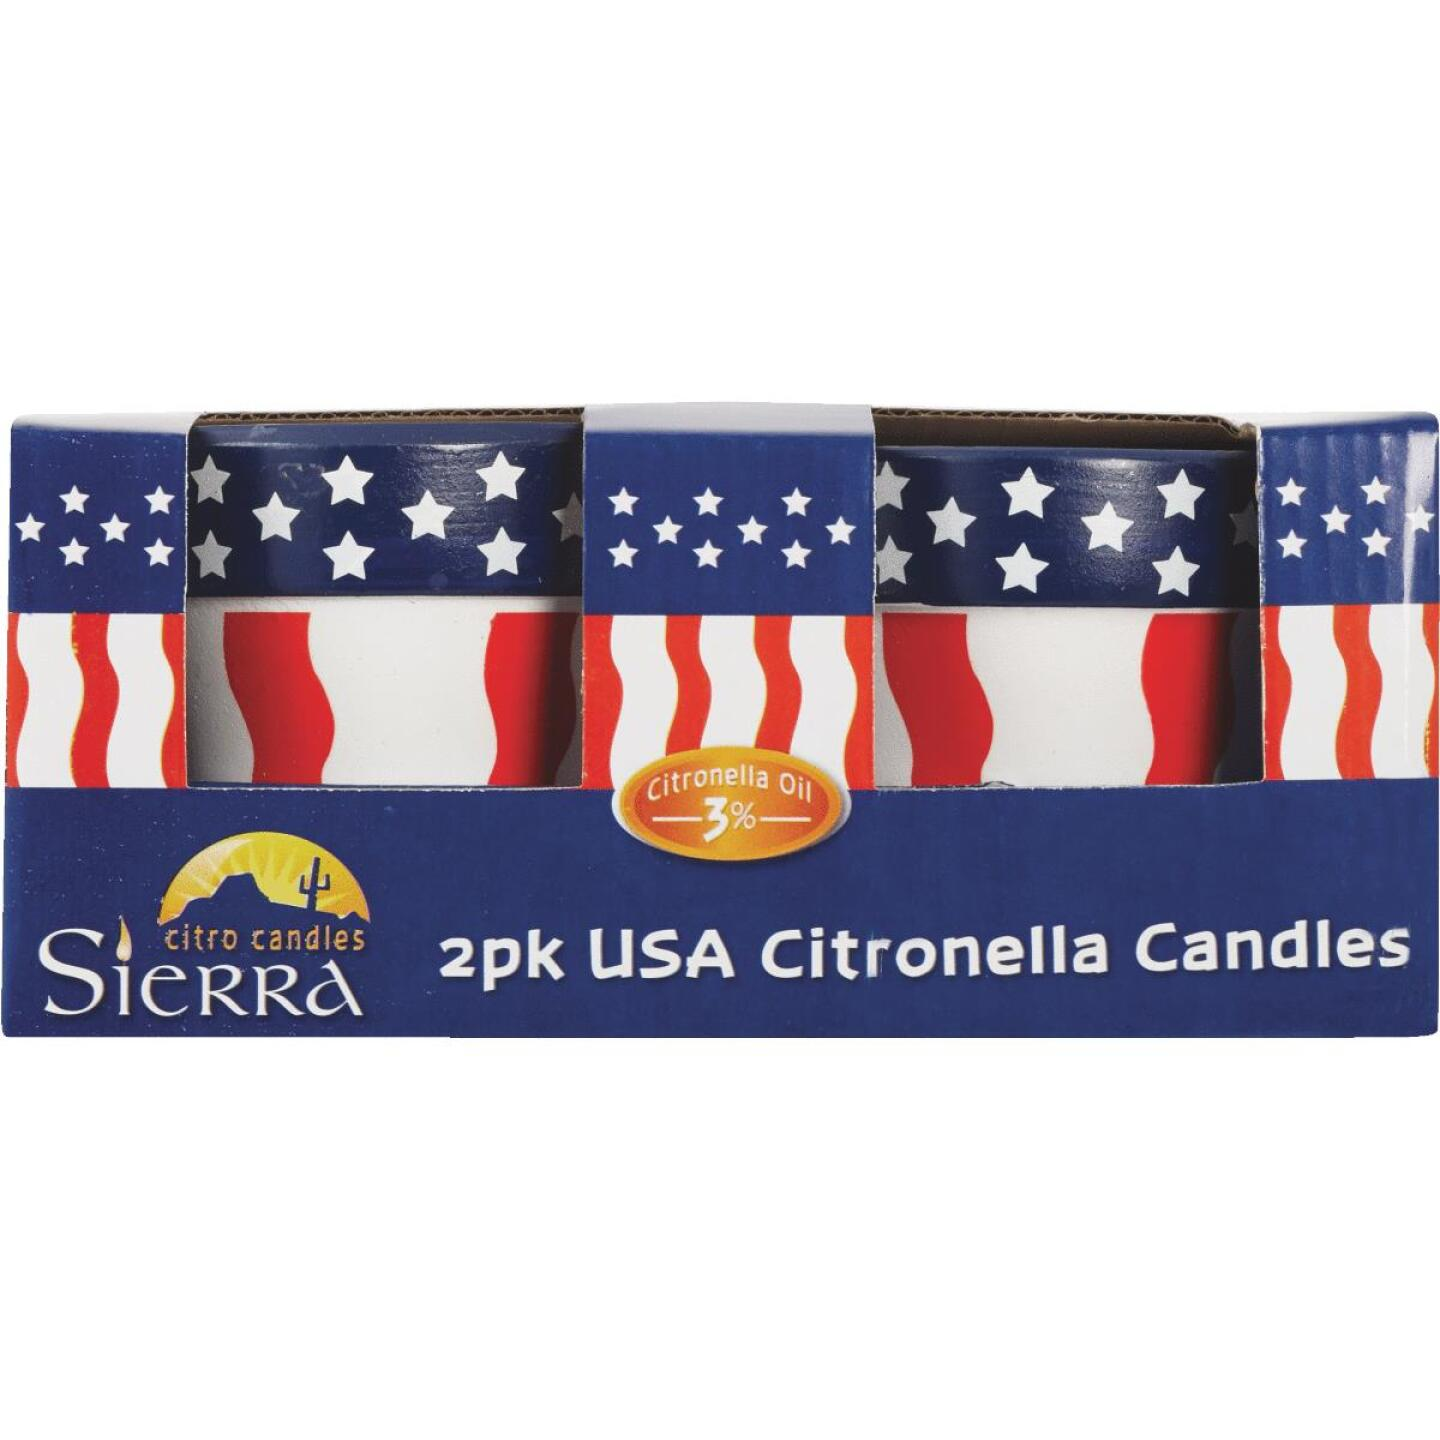 Sierra 3.5 Oz. 1-Wick USA Citronella Candle (2-Pack) Image 2